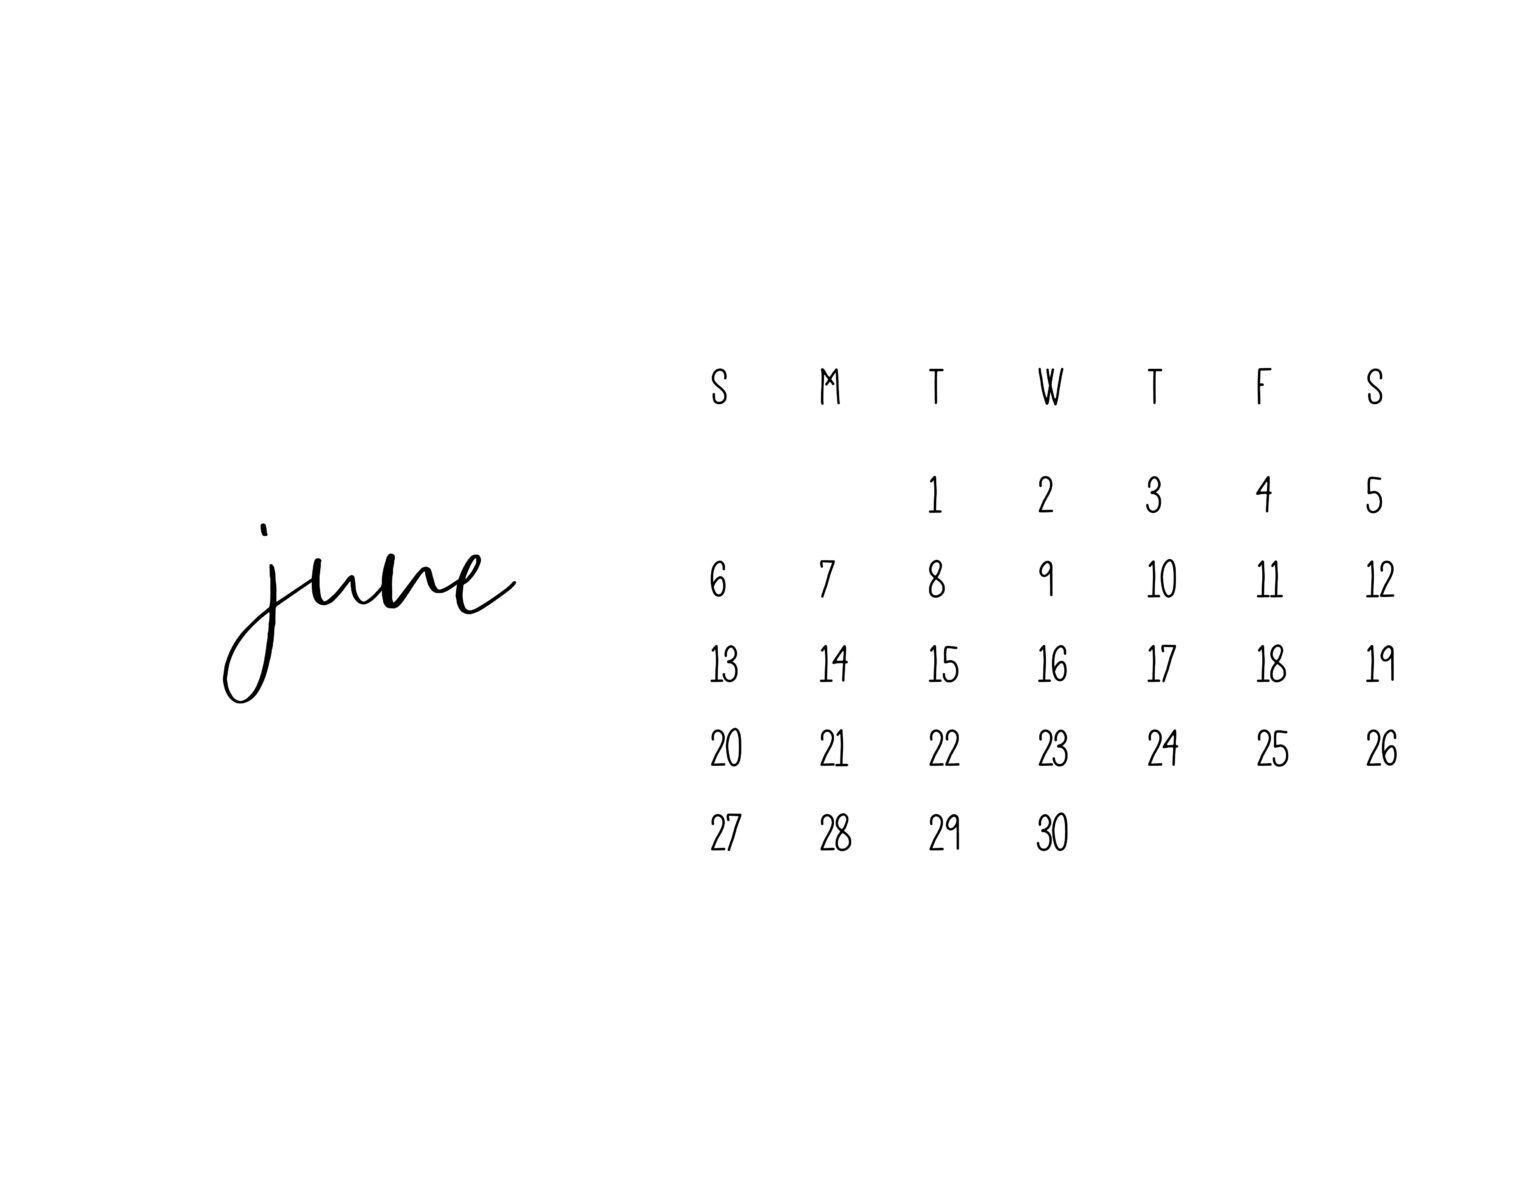 2021 Calendar Printable Free Template - World Of Printables